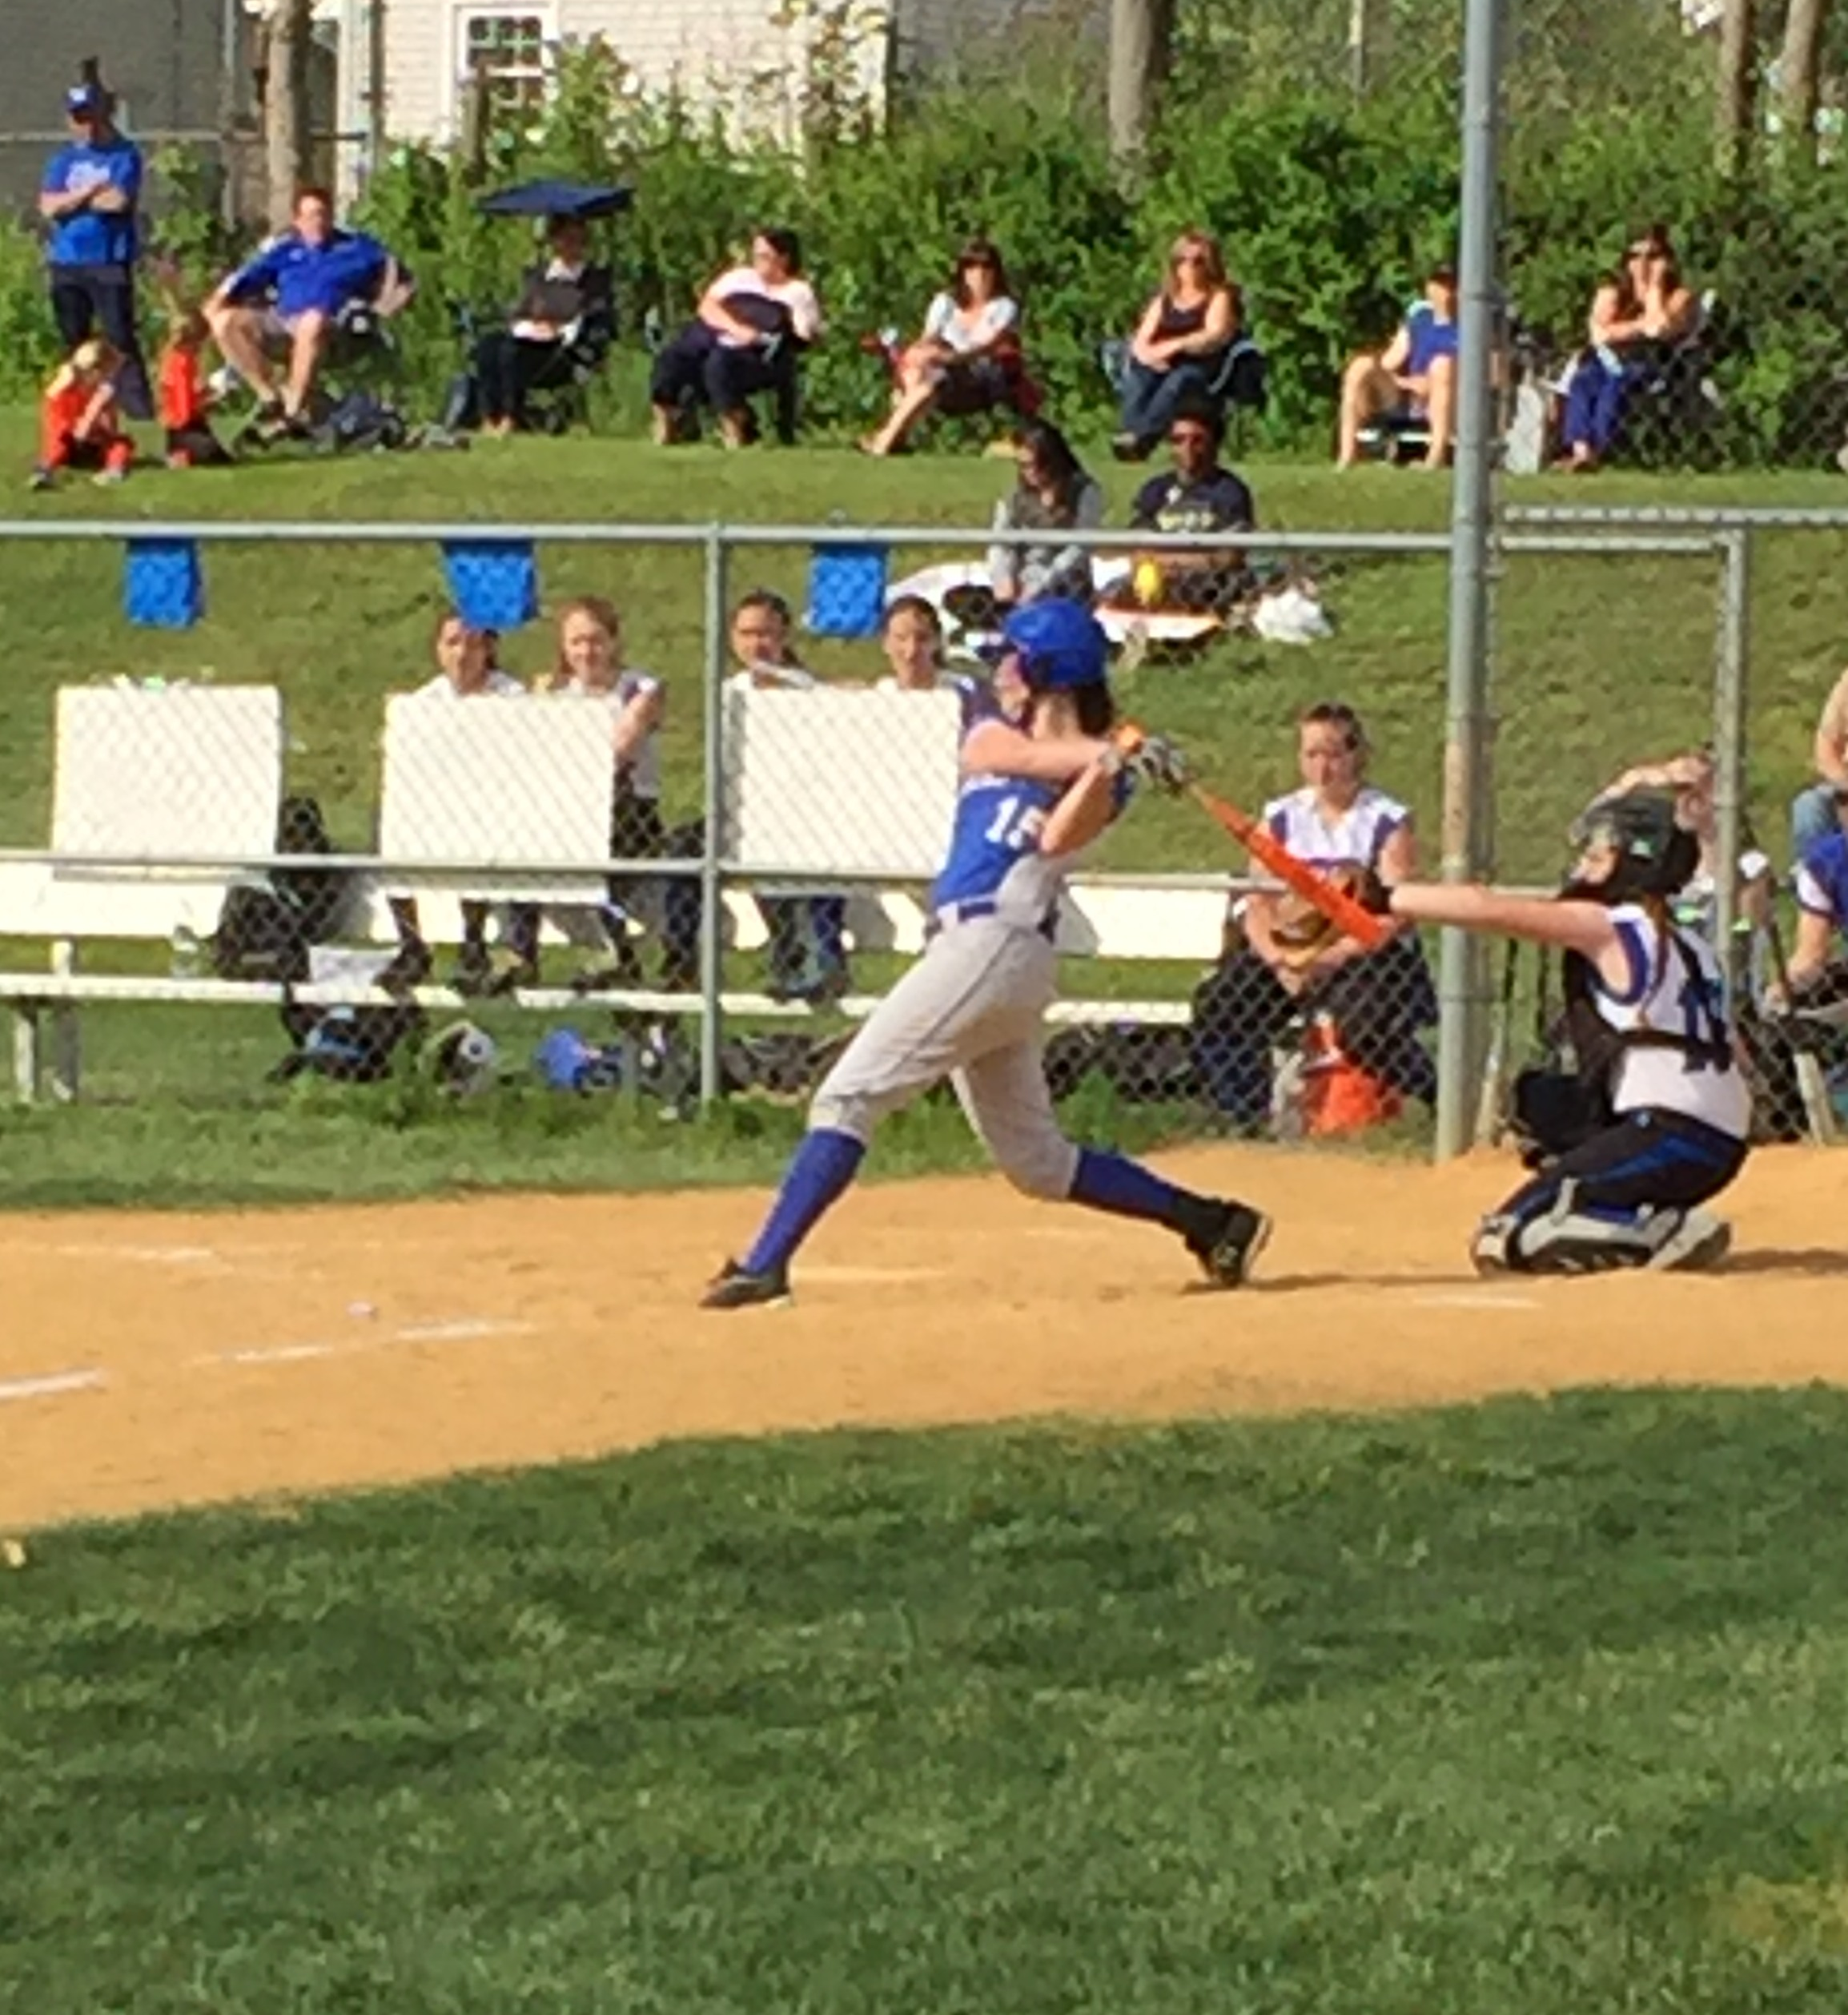 b0b28750fa770ae392c5_softball_5-19.JPG